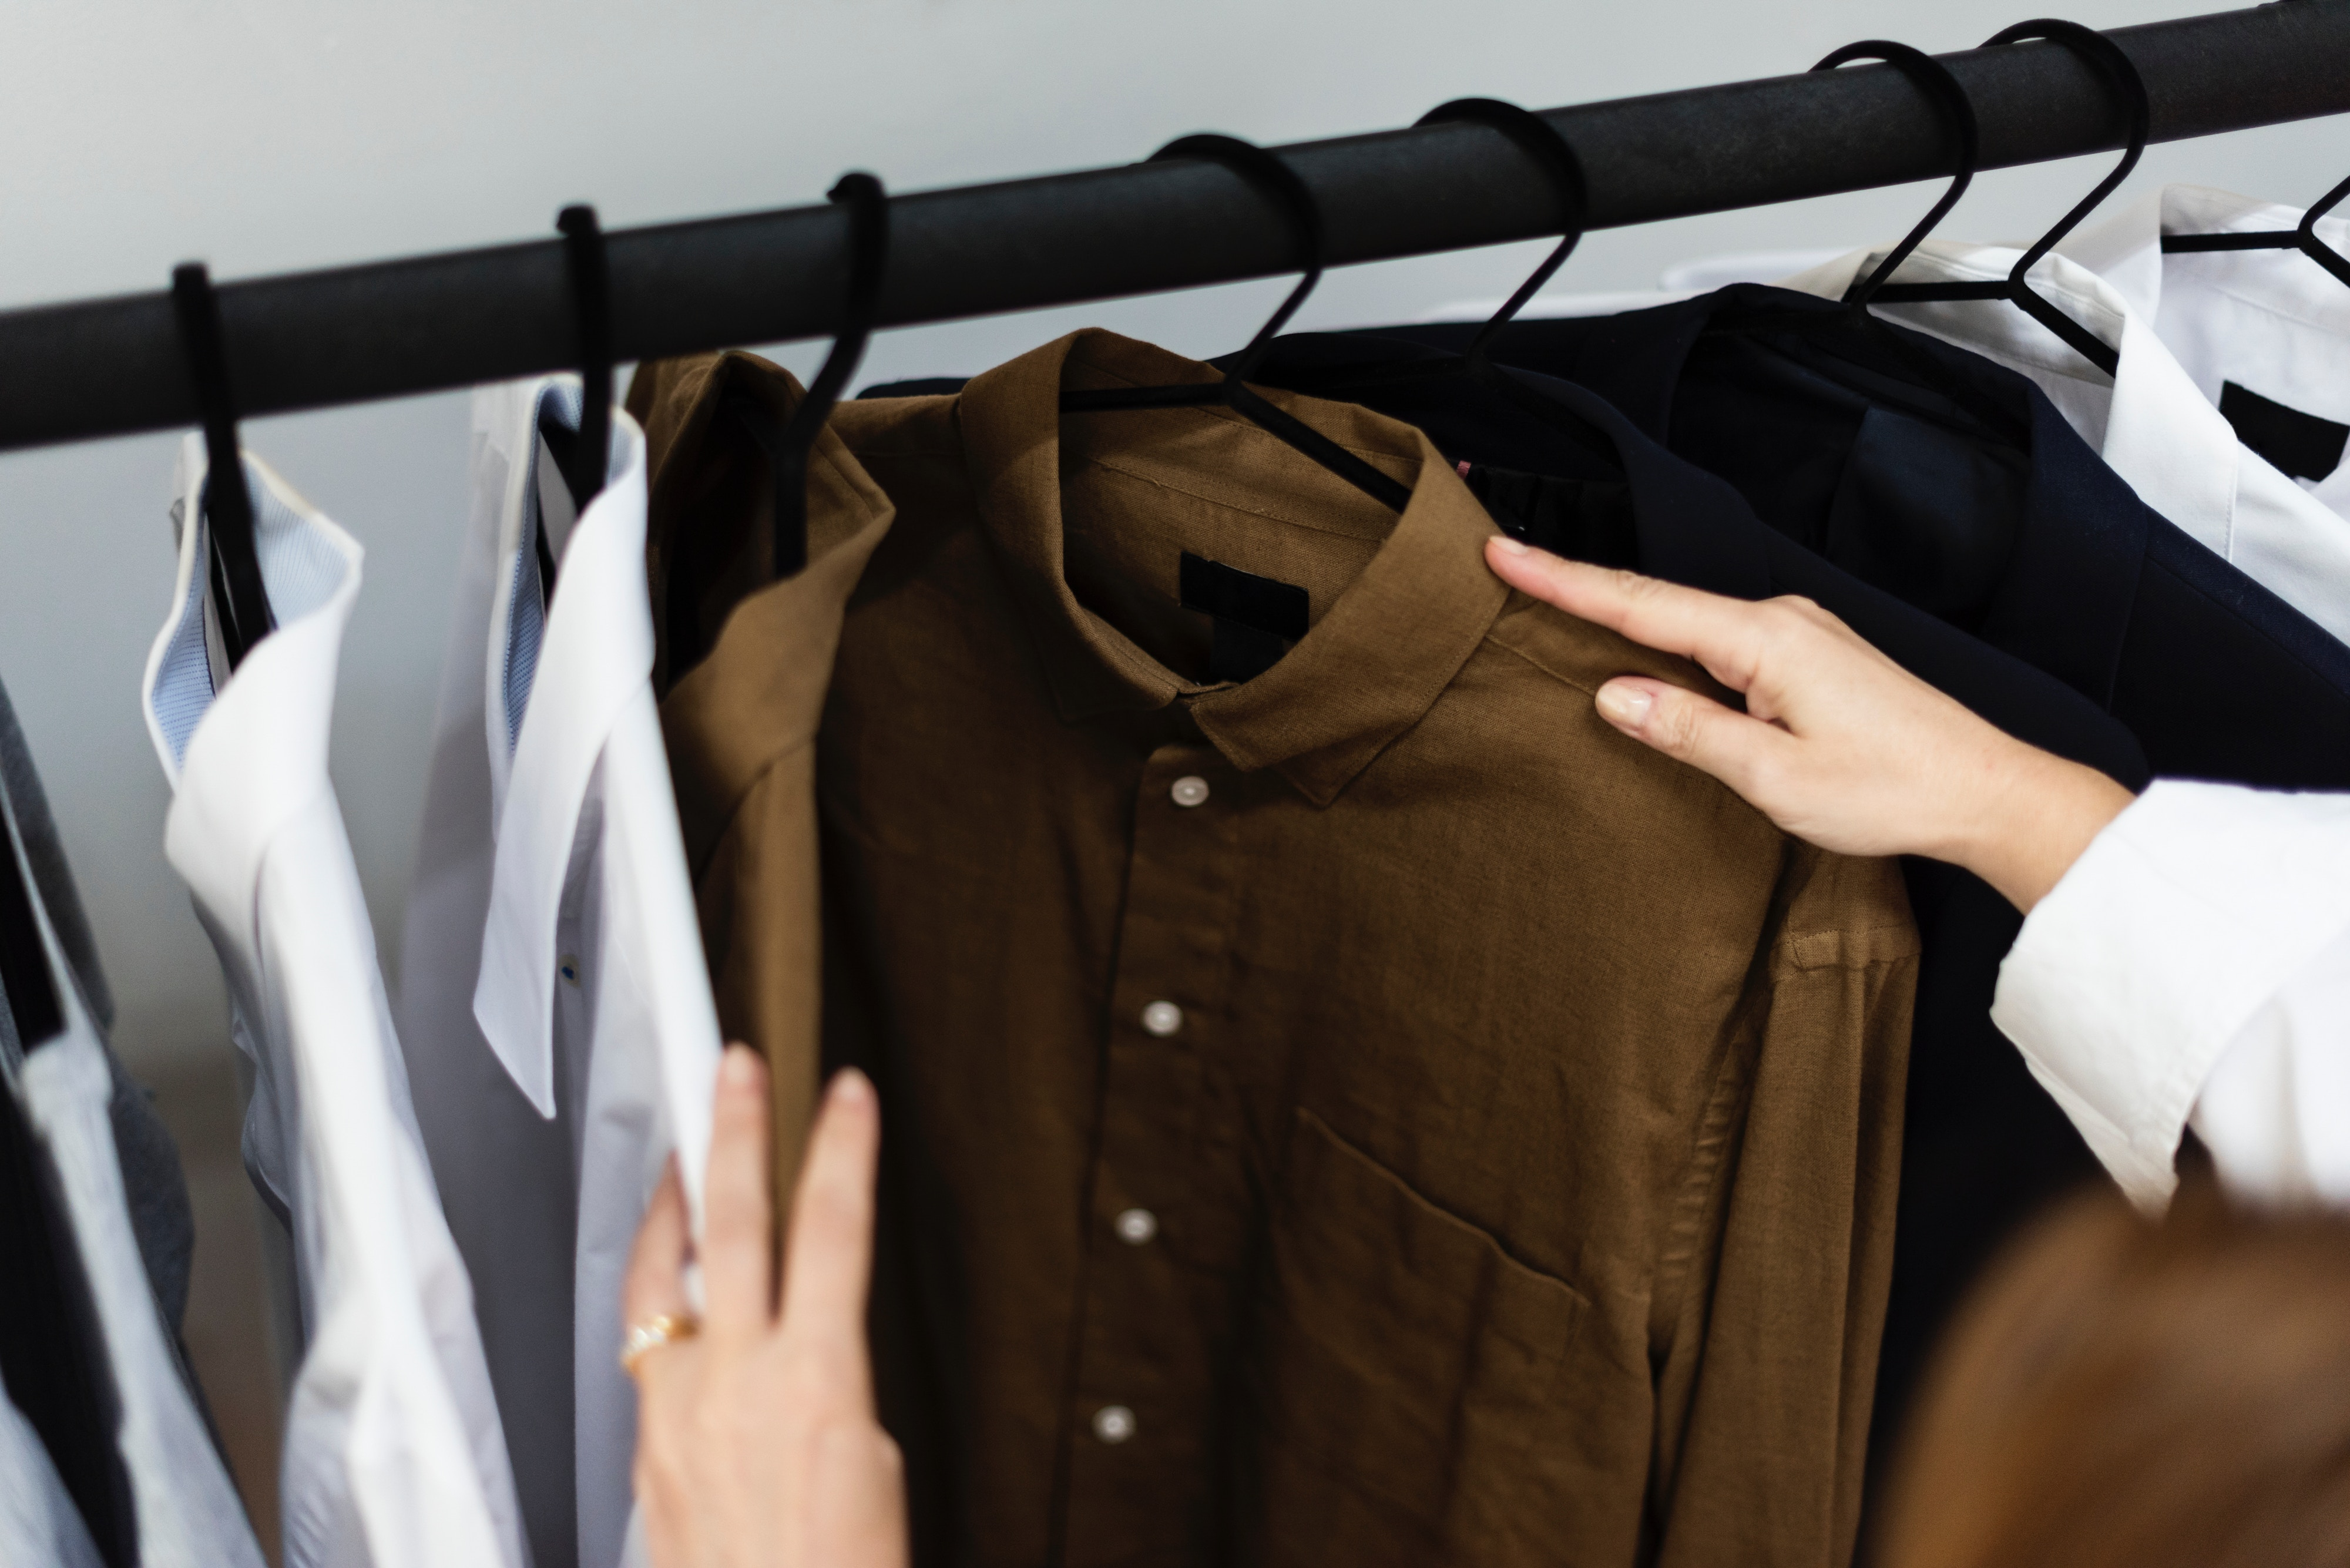 How to Plan and Organize a Capsule Wardrobe